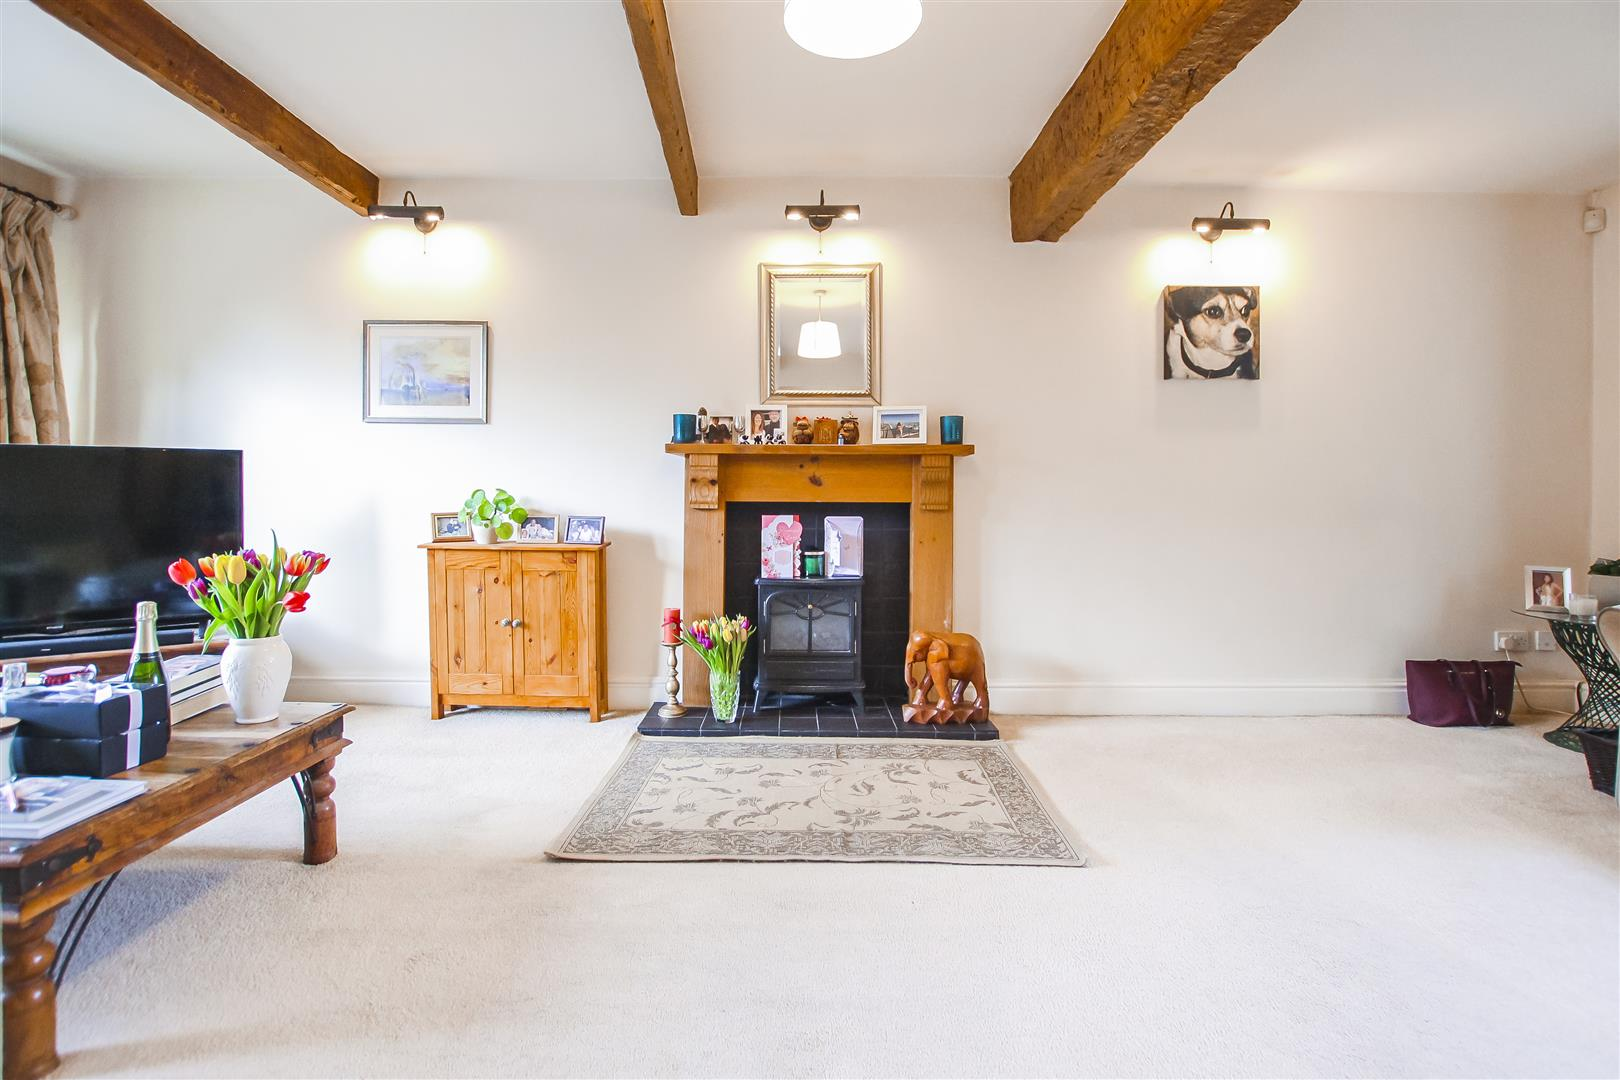 4 Bedroom Farmhouse For Sale - Image 48